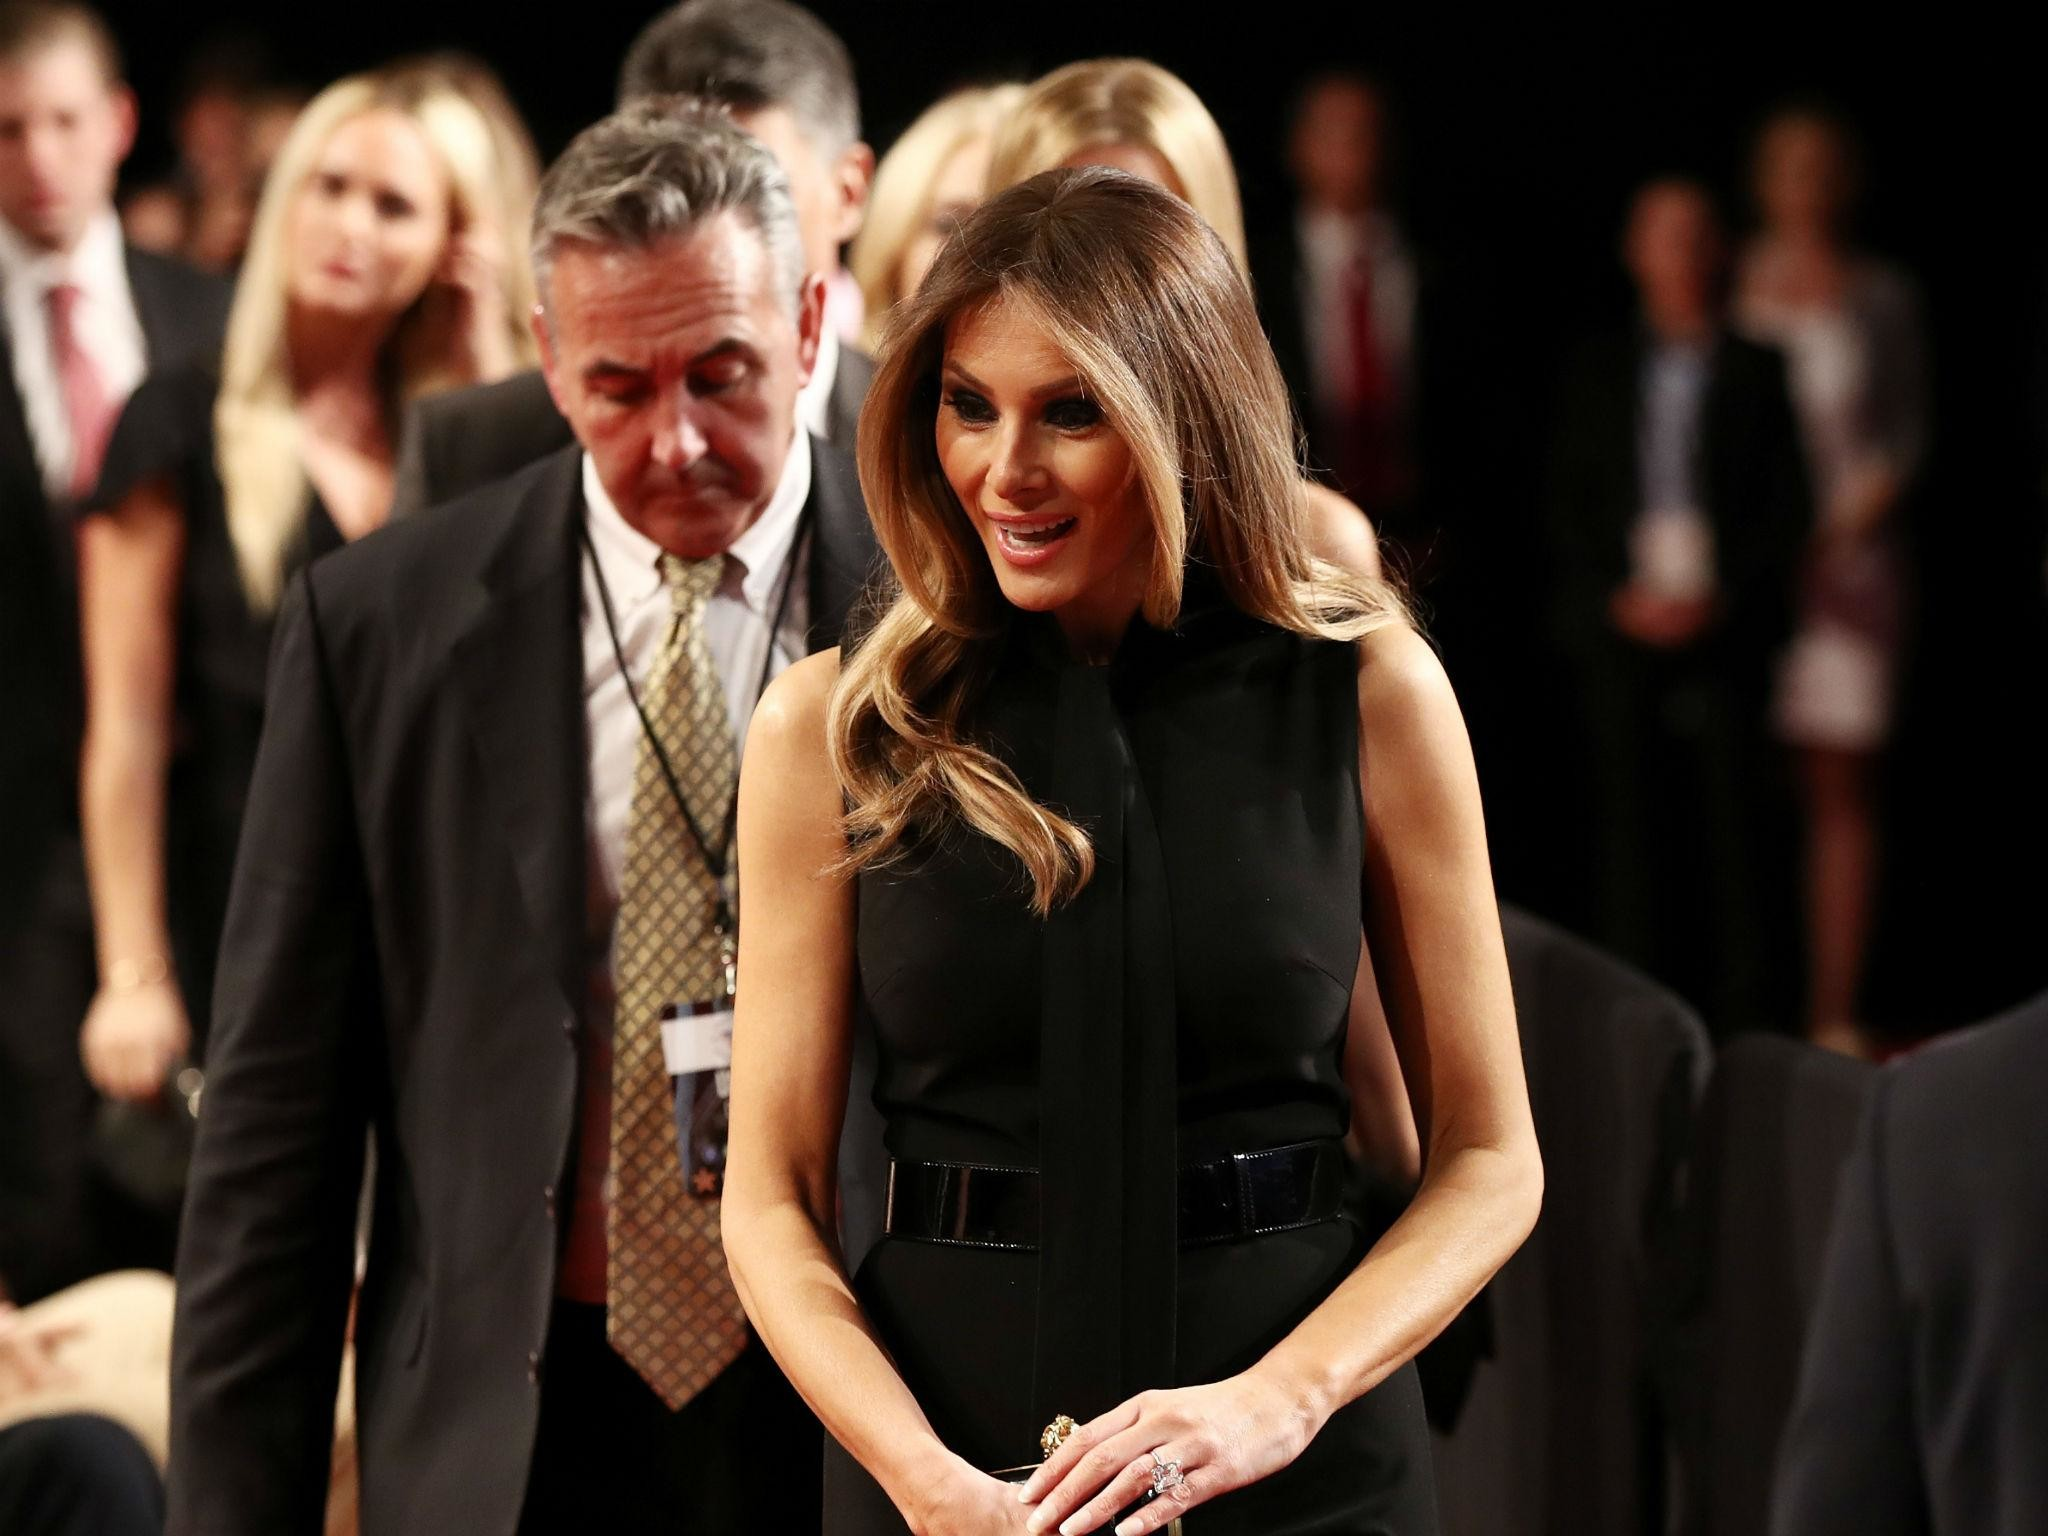 Donald Trump informs his wife Melania live on air that she will be doing  'two or three' more important speeches   The Independent